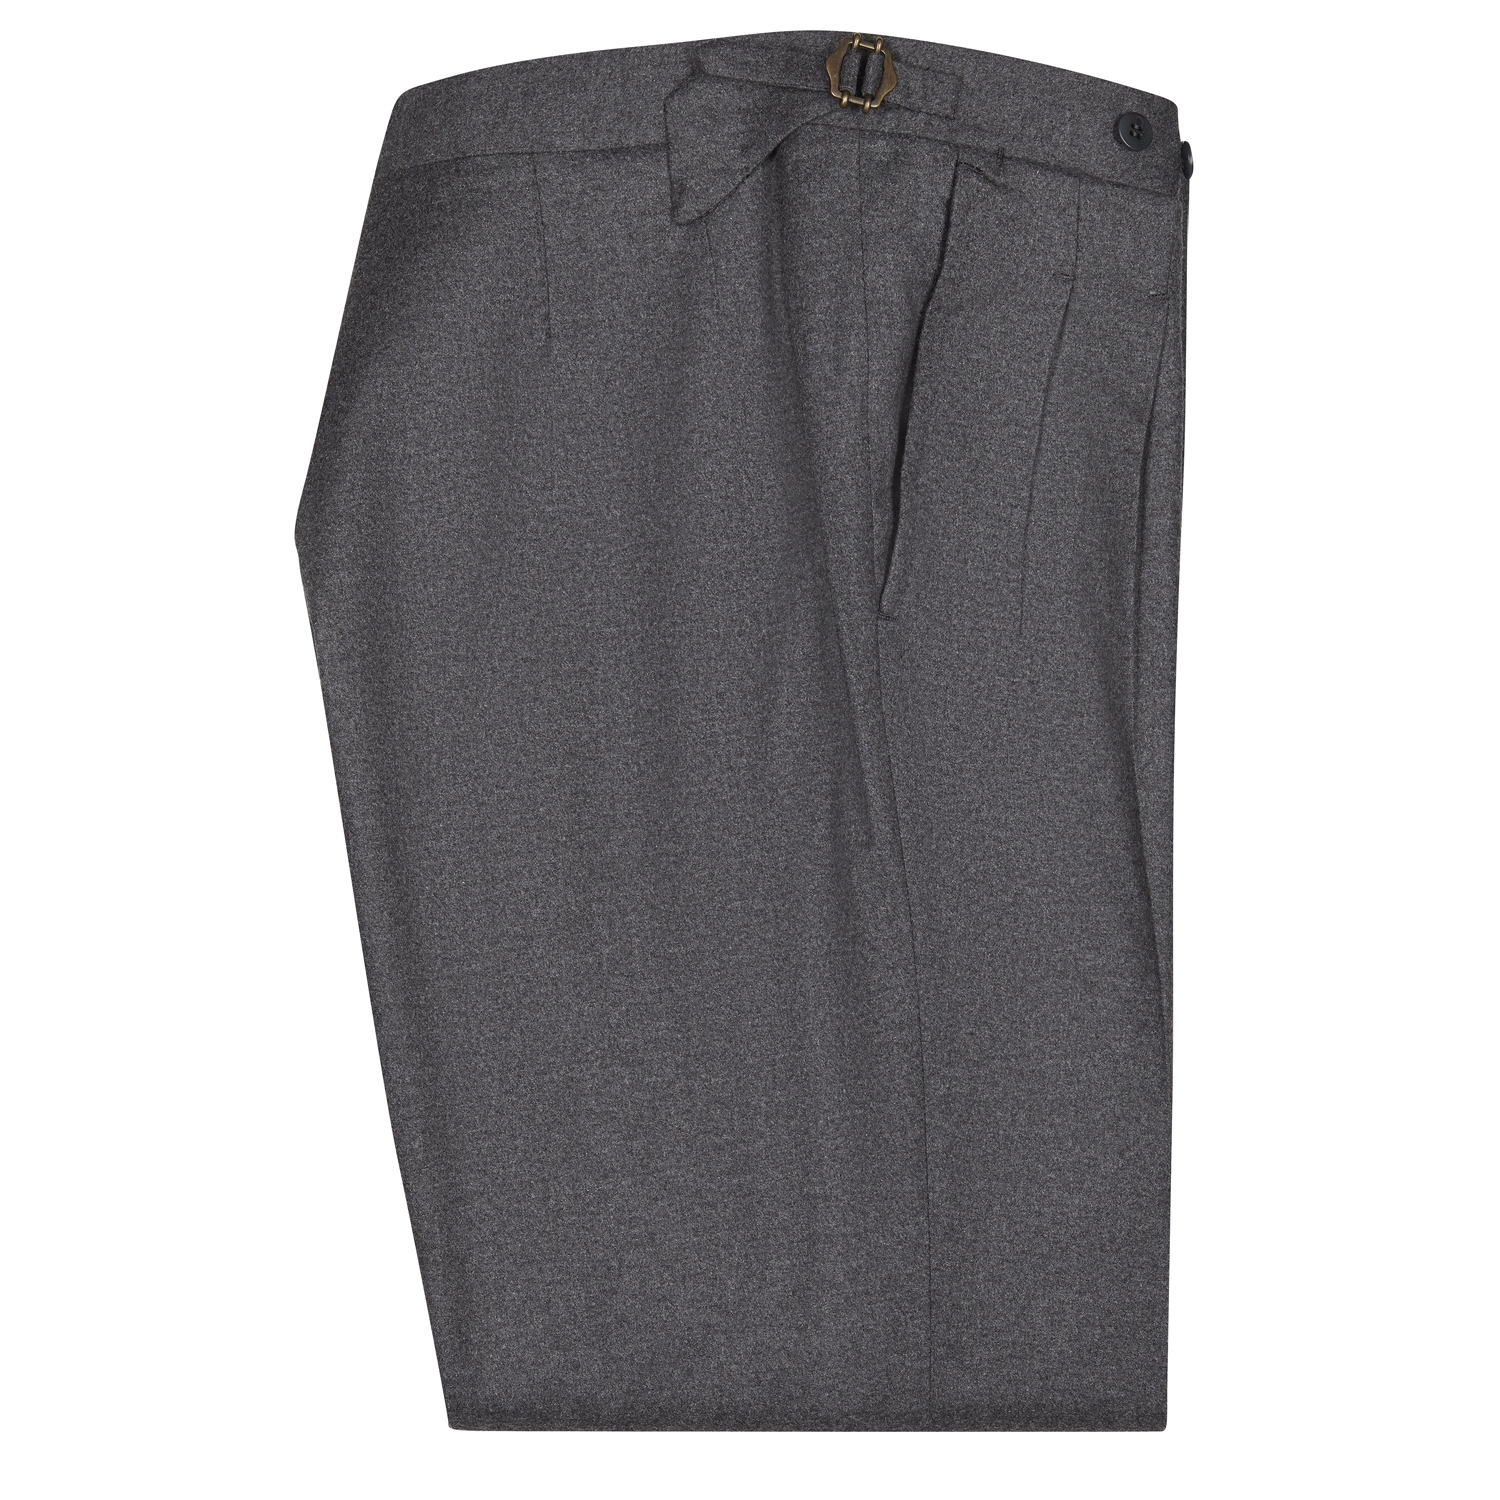 SSM-TR6 – Dark Grey double reverse pleats w/ side-adjusters. Cashmere/wool mid-high waisted flannel trousers @loro piana fabric.